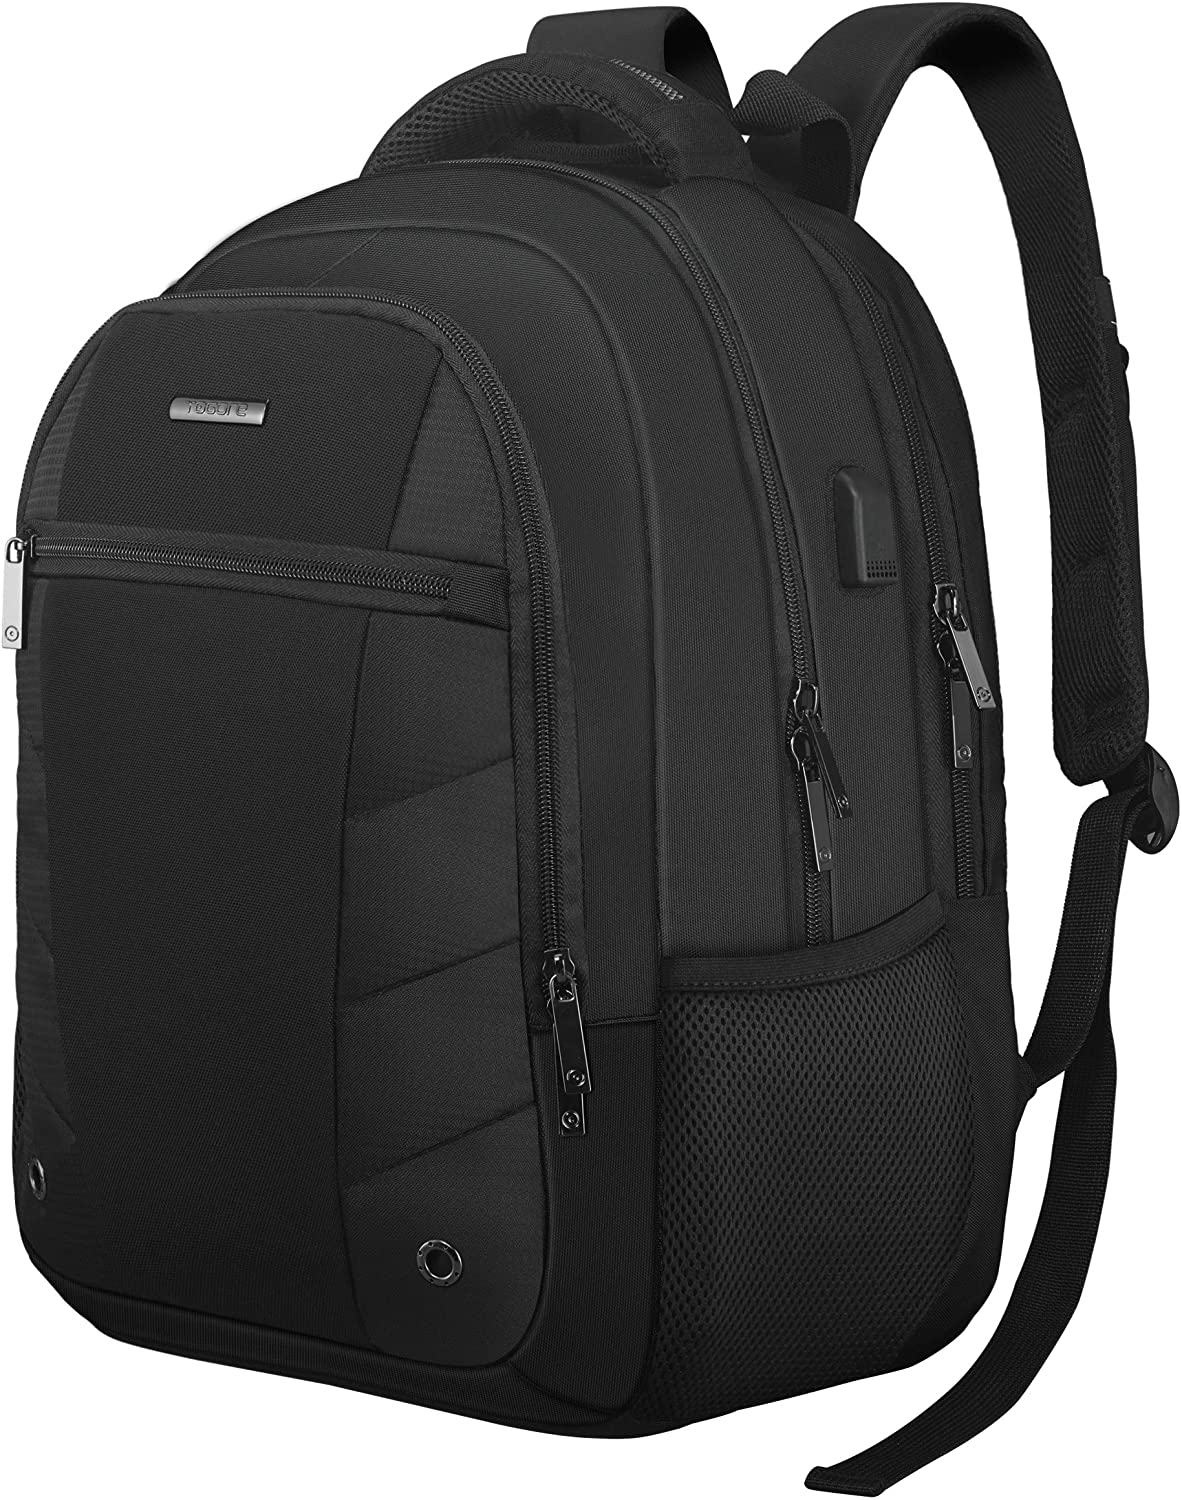 Business Travel Laptop Backpack 17 Inch, TOGORE TripPro Durable Computer Backpack with USB Charging Port for Men & Women, 40L Large Water Resistant College School Backpack-Black